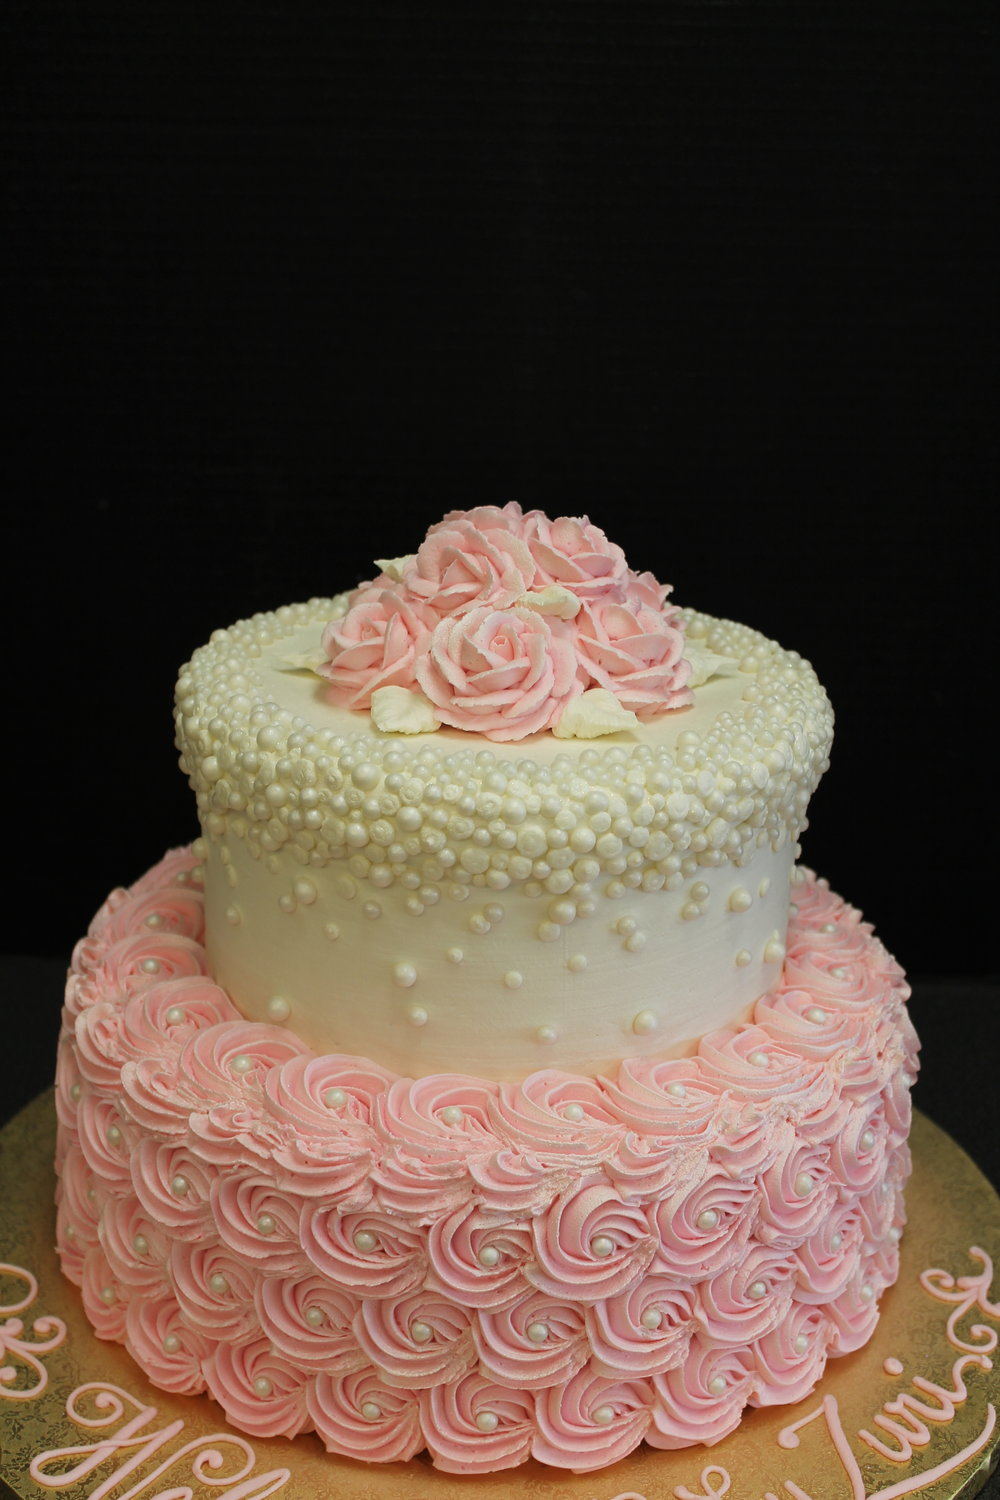 Bridal Shower Cakes Delaware County PA SophistiCakes Bakery